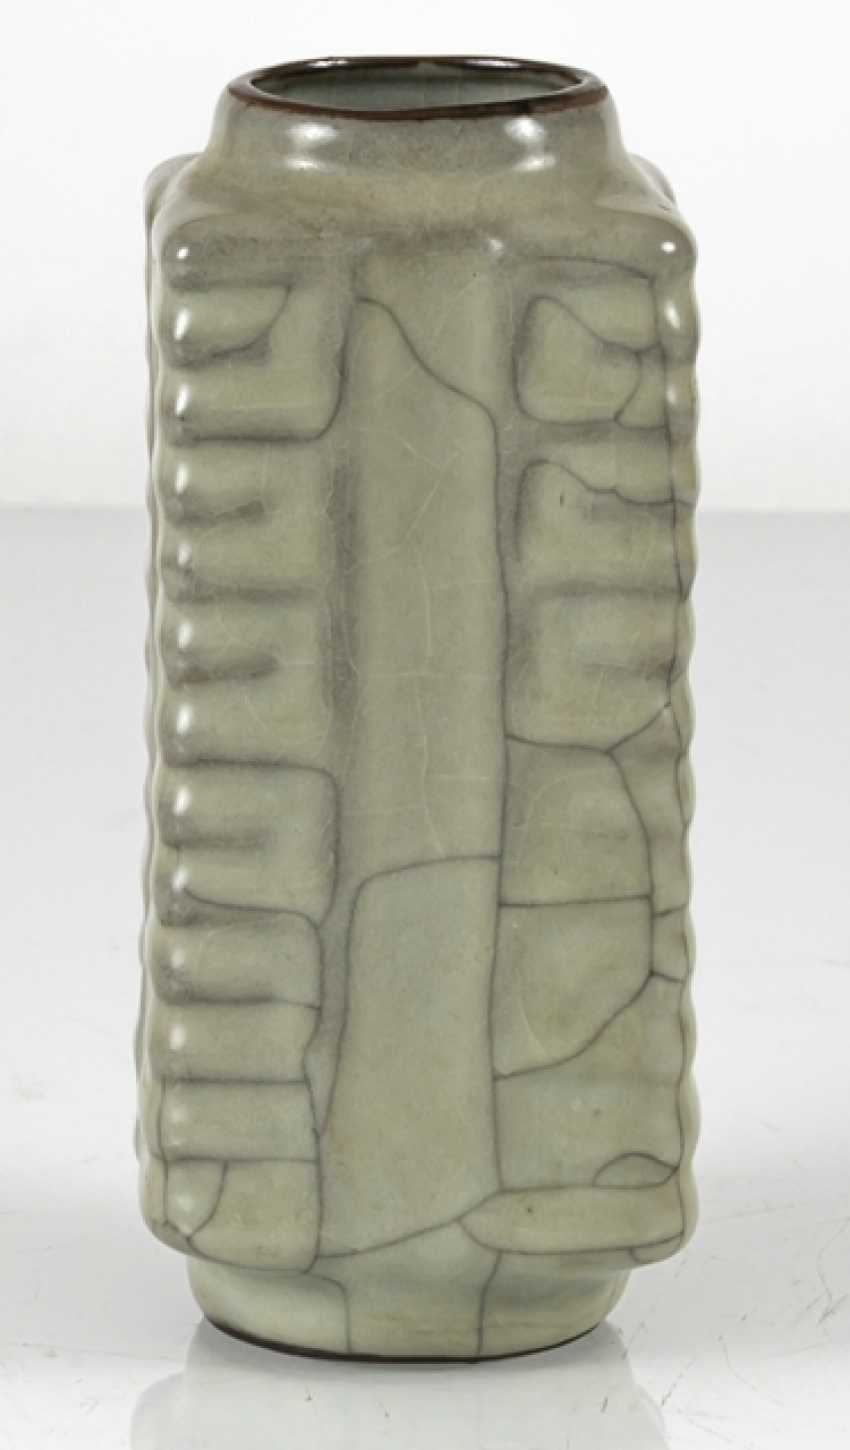 Small 'Cong'-shaped Vase with celadon glaze - photo 2